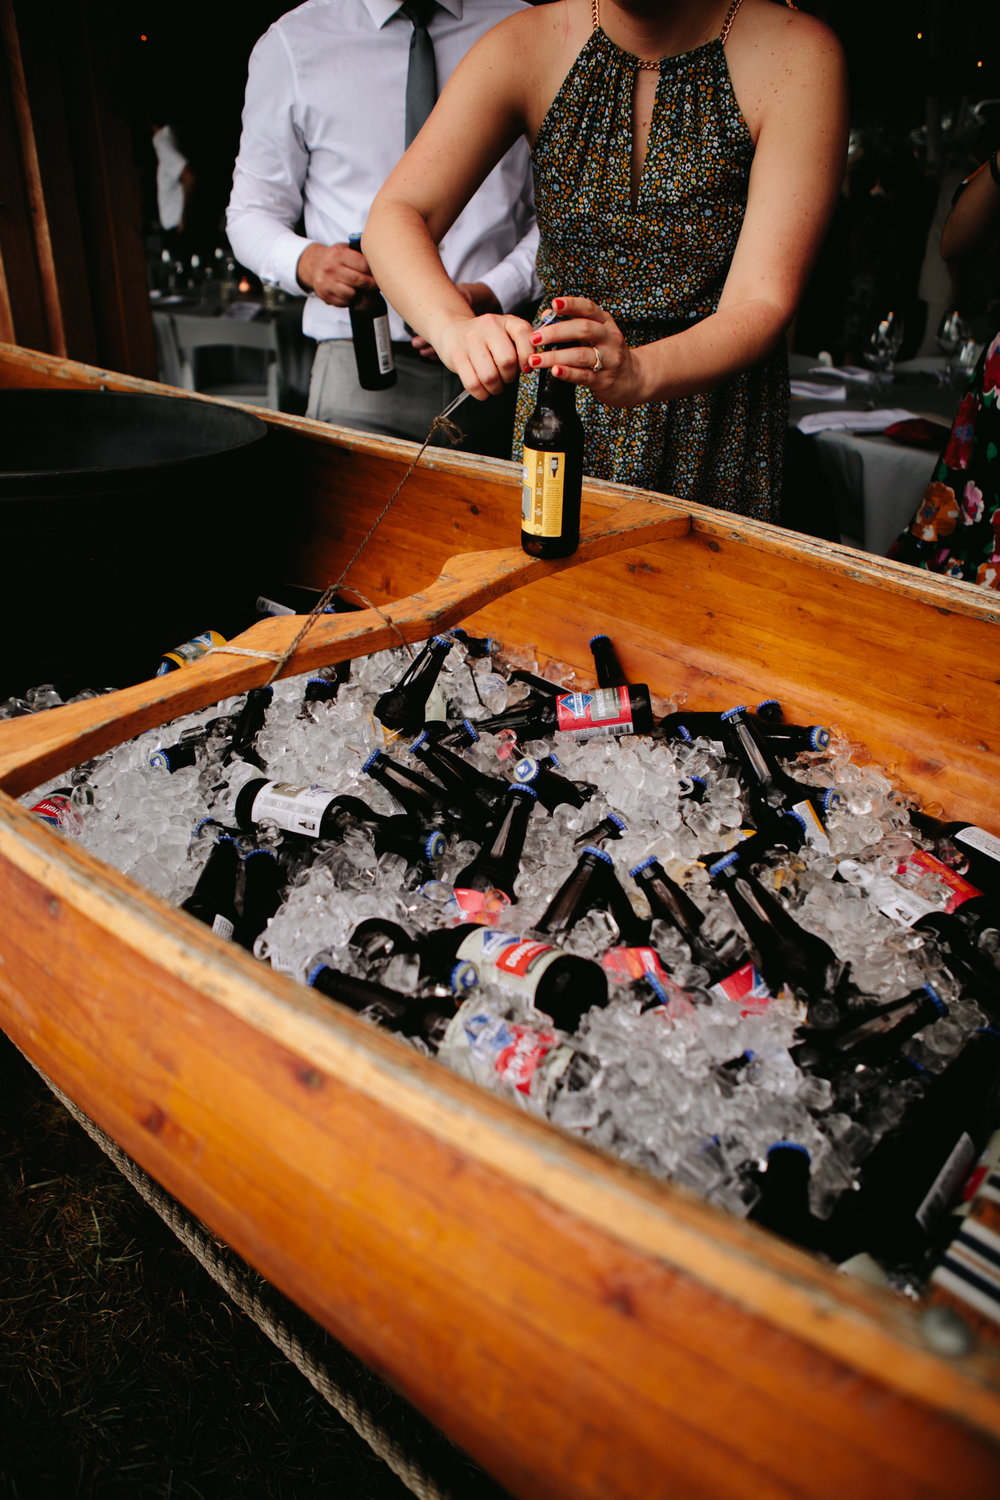 camp-wedding-drink-canoe-2-2.jpg